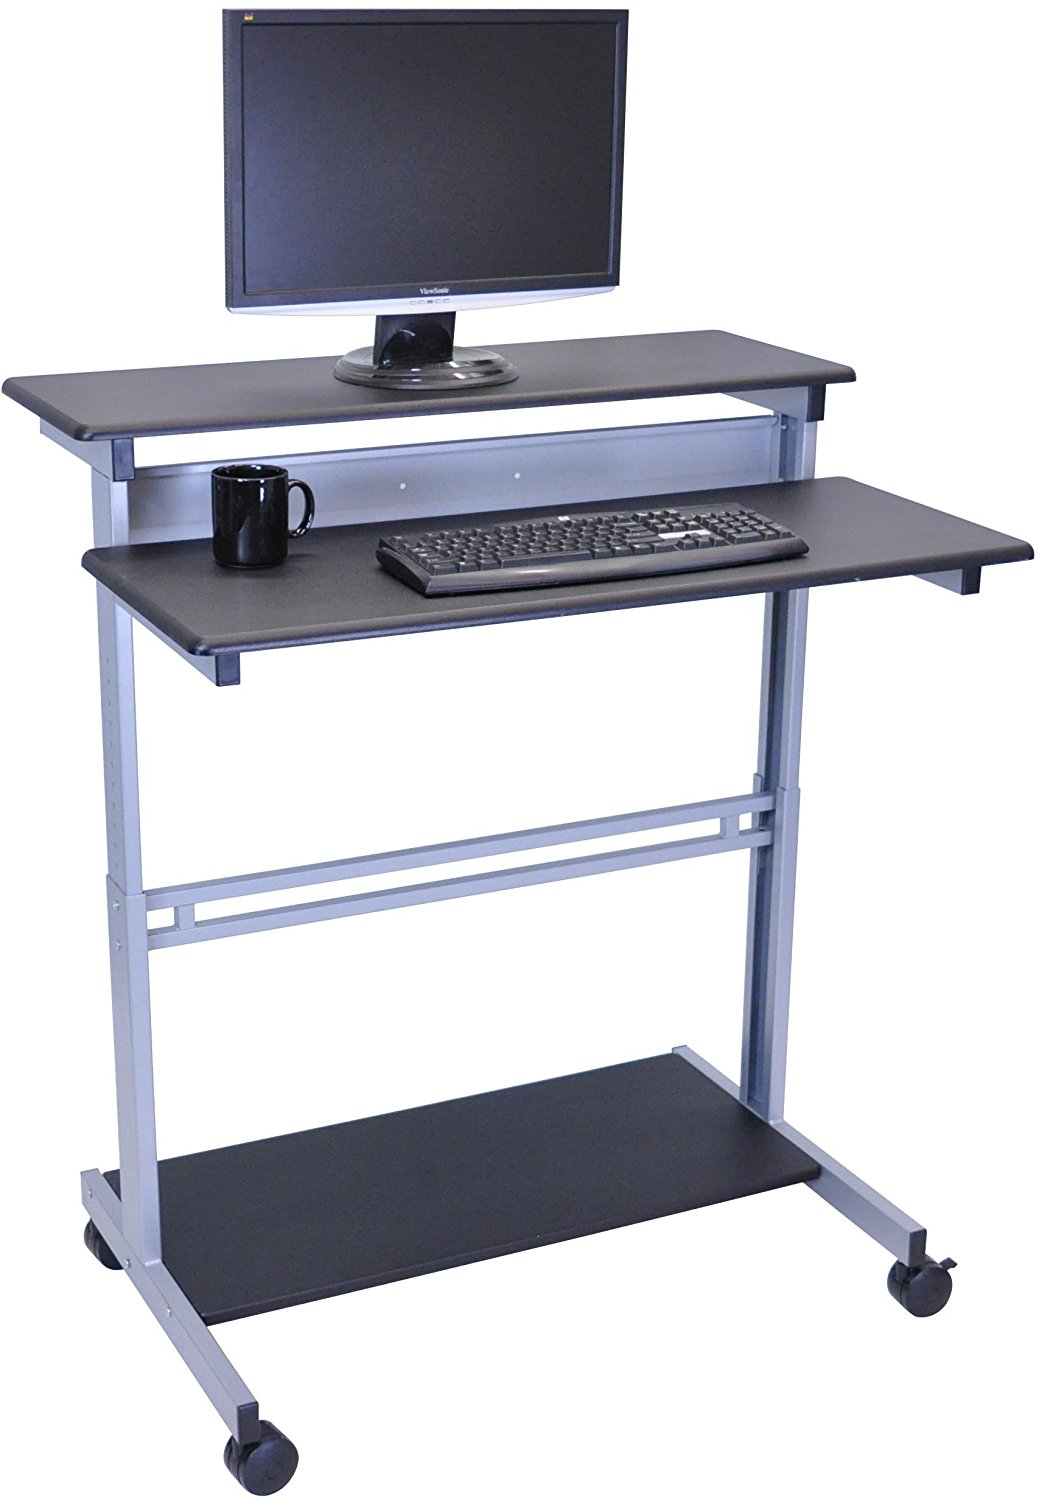 Standing Desk Office Depot | Office Depot Desks | Officemax Chairs